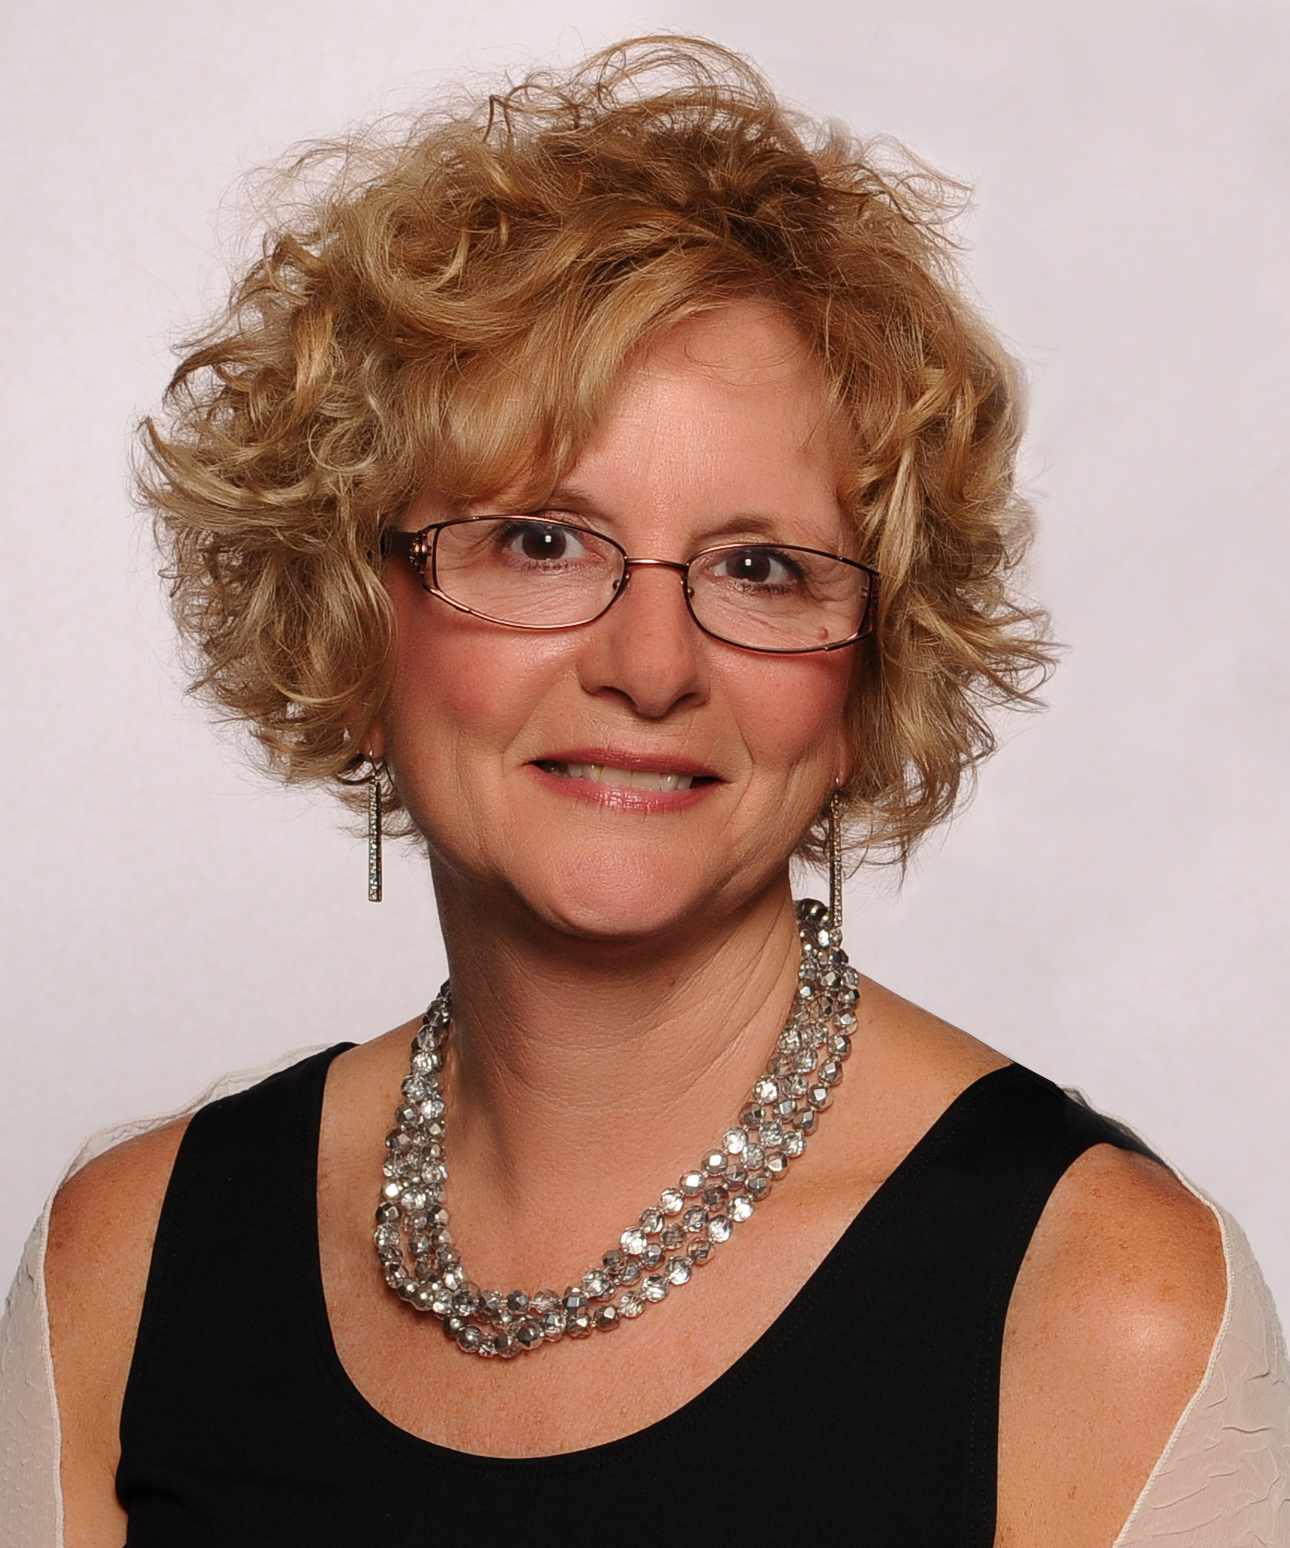 Denise Gallagher